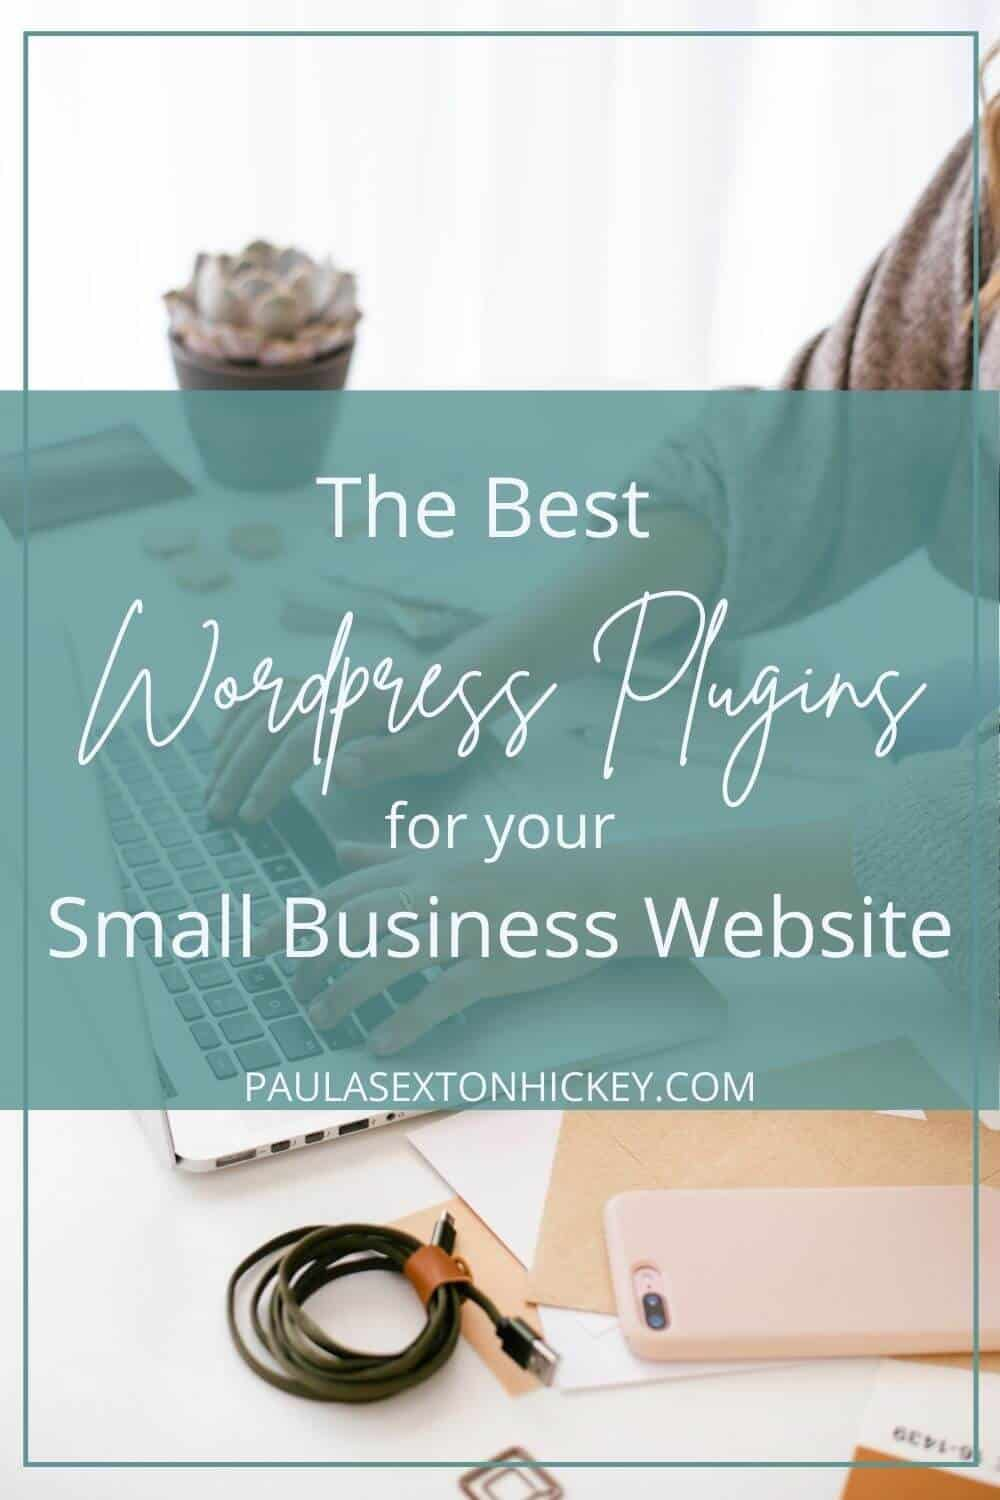 The Best WordPress Plugins for Your Small Business Website